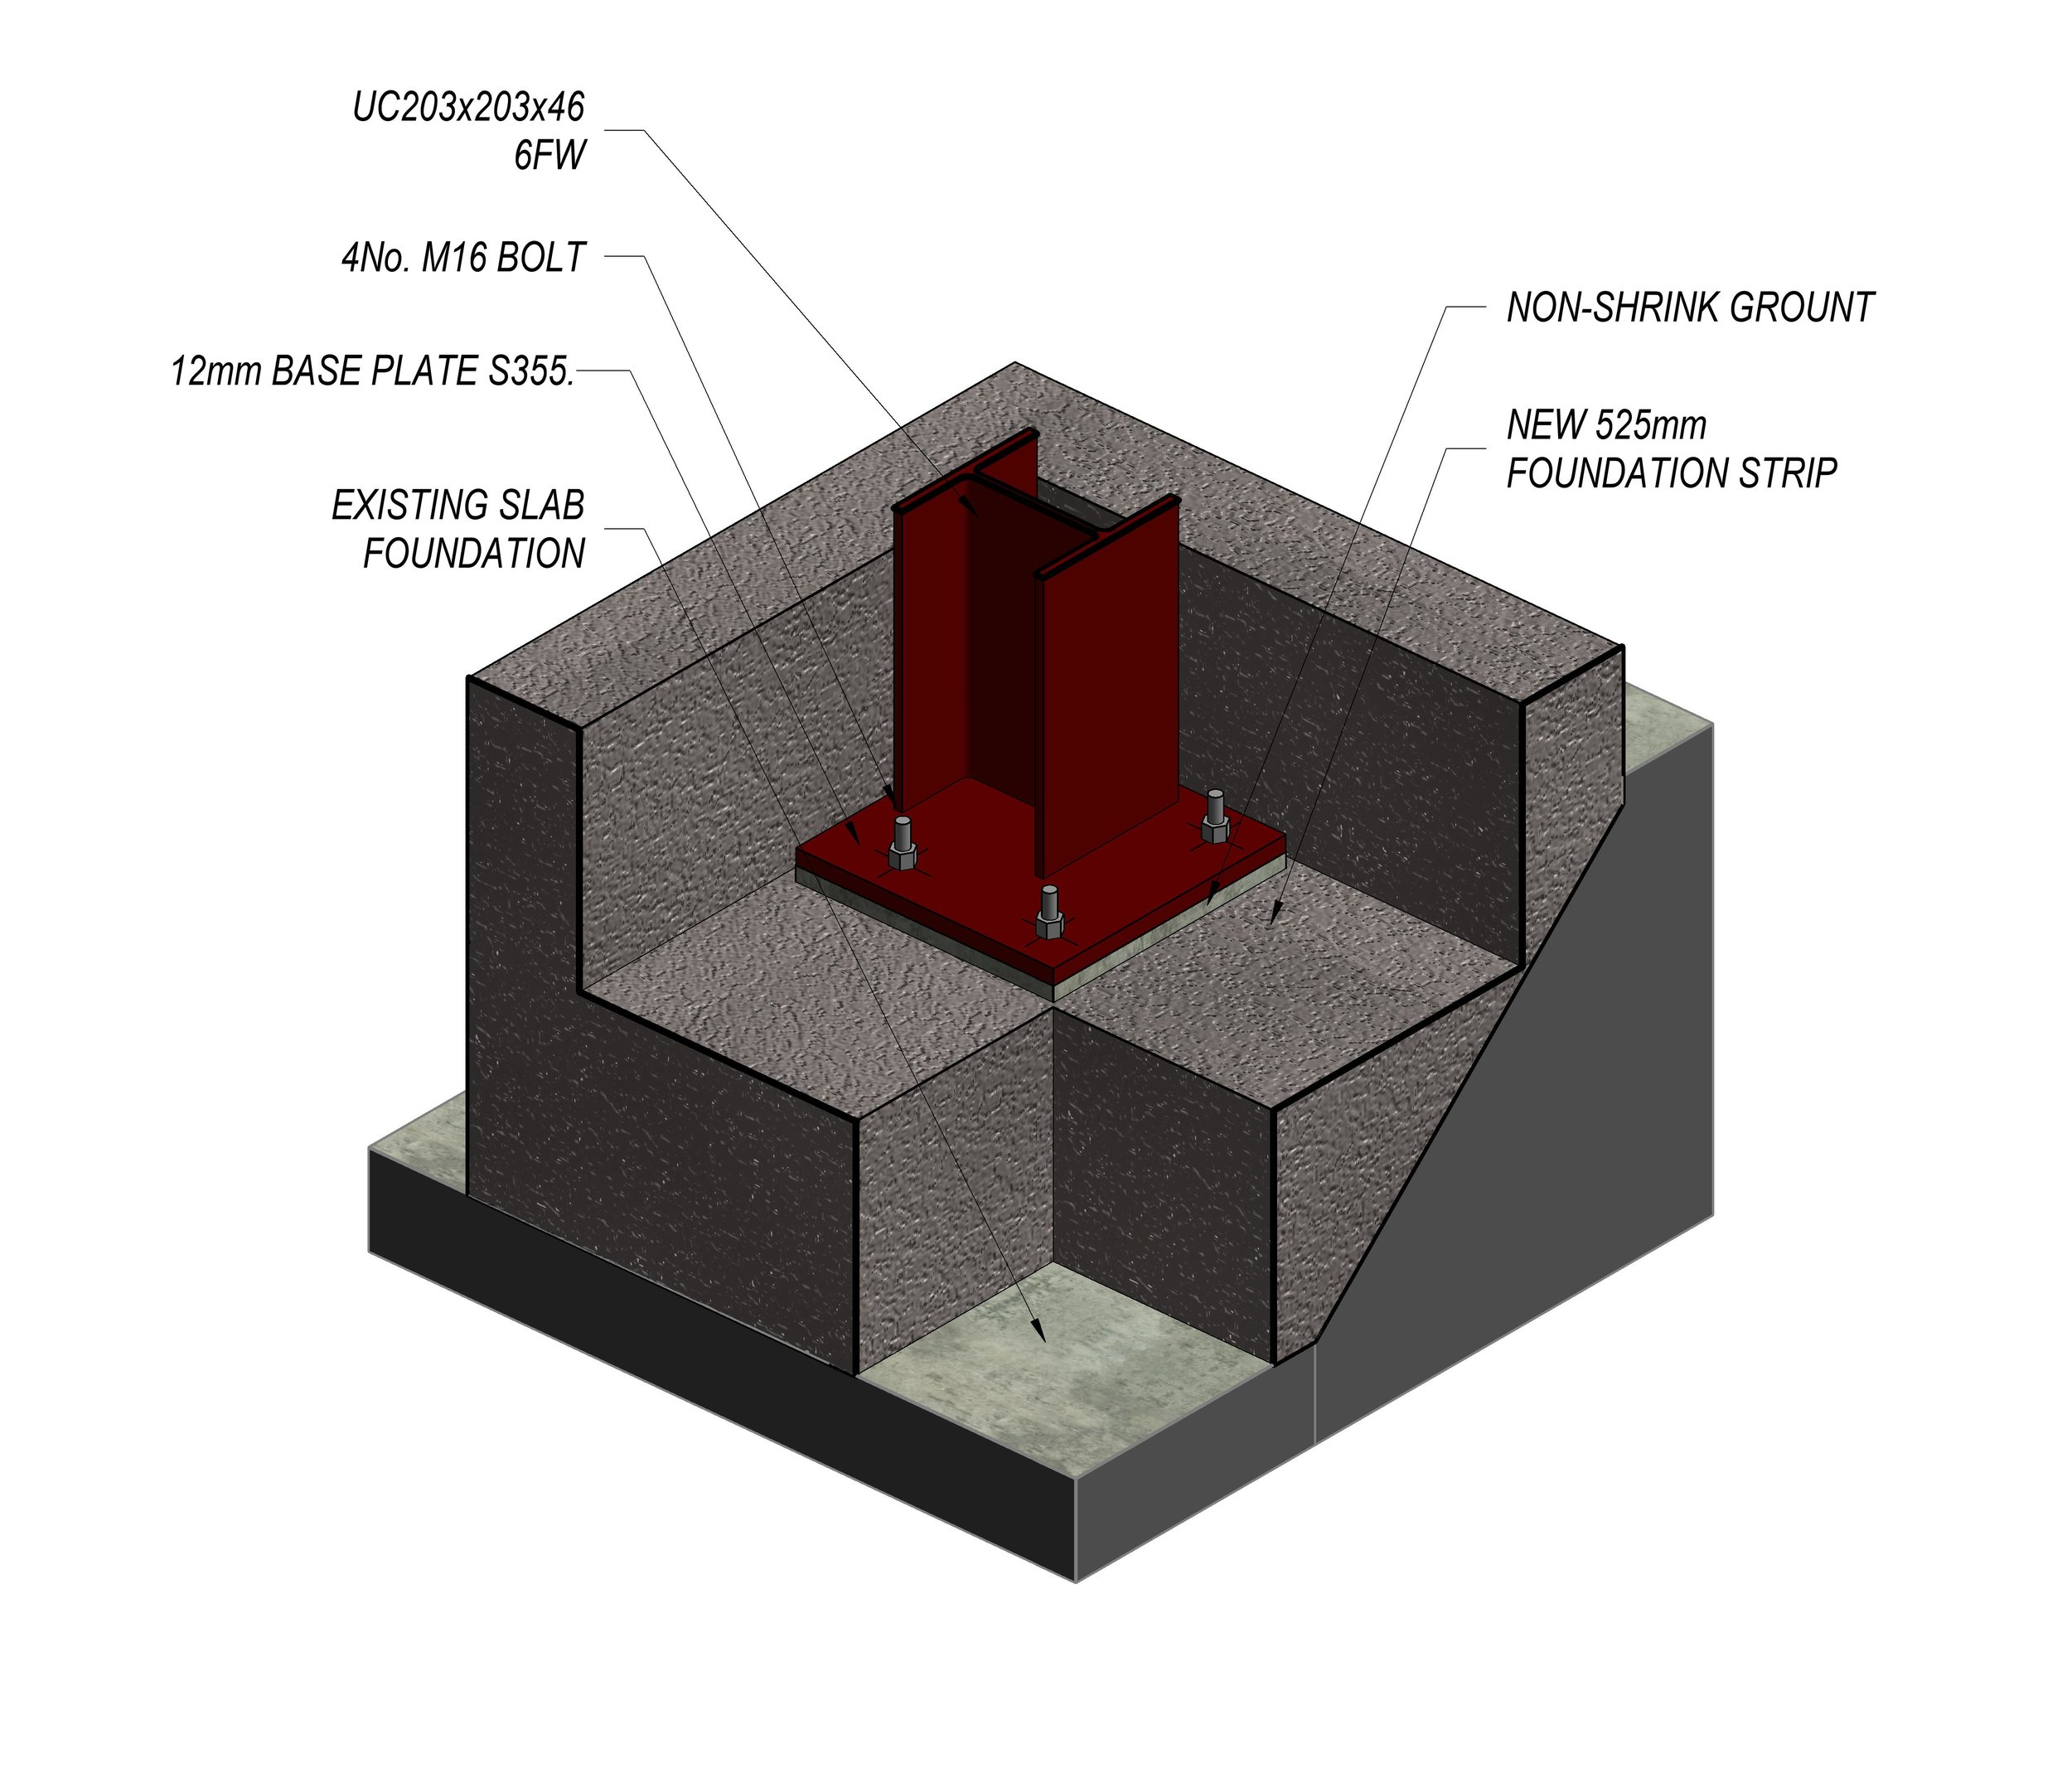 ENG-DWG-VED-VC0503 - 3D View - TYPE 2 - 3D VIEW.jpg